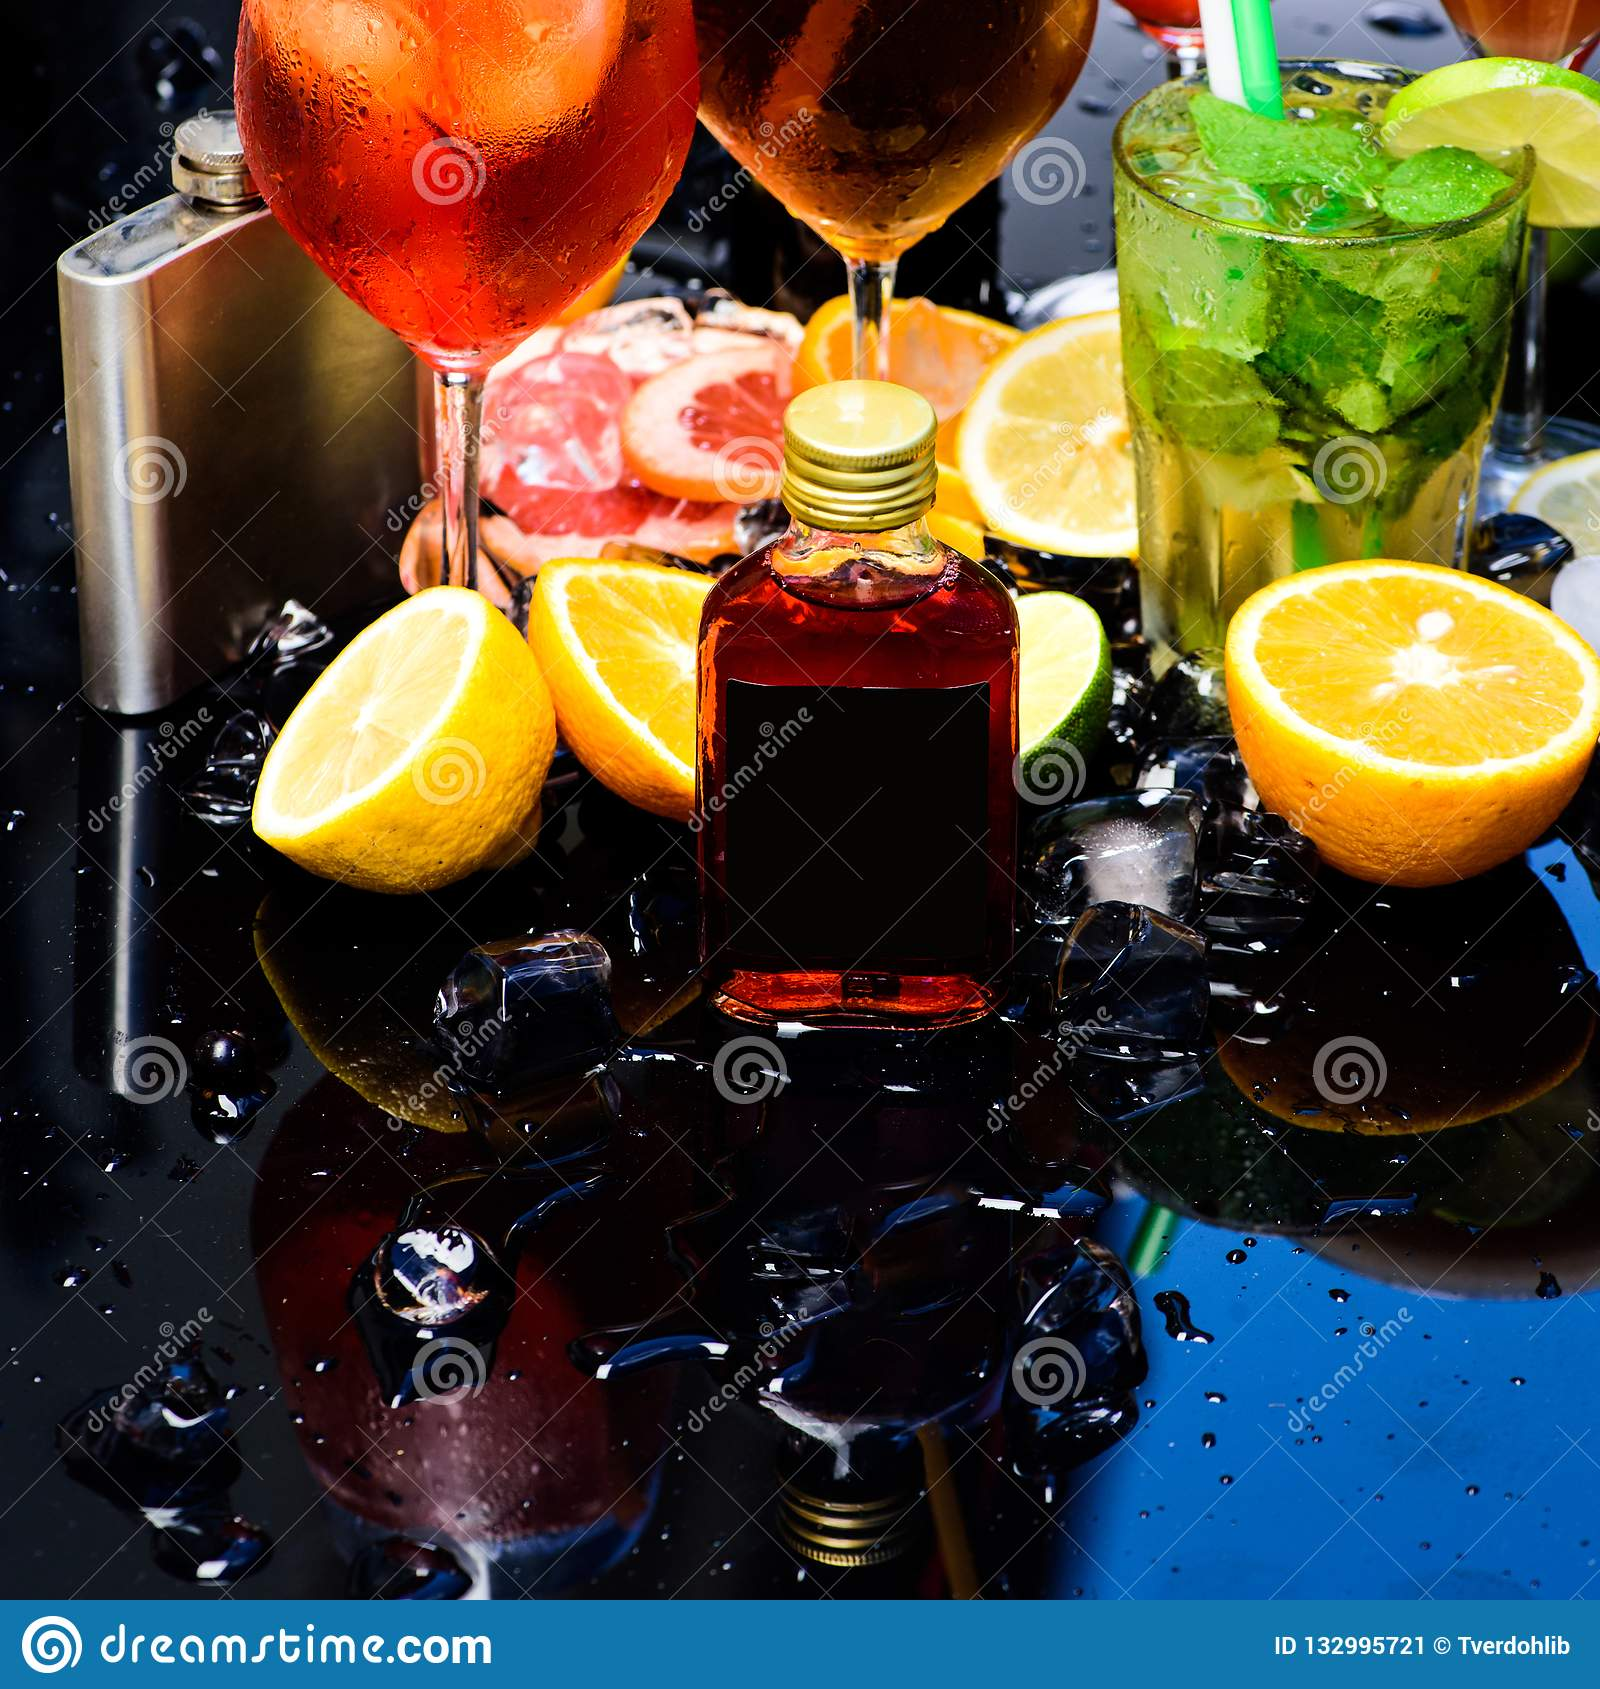 Enjoy a variety of specialty cocktails. Whiskey cocktail drinks in glasses. Cocktails garnished with ice cubes, fruit